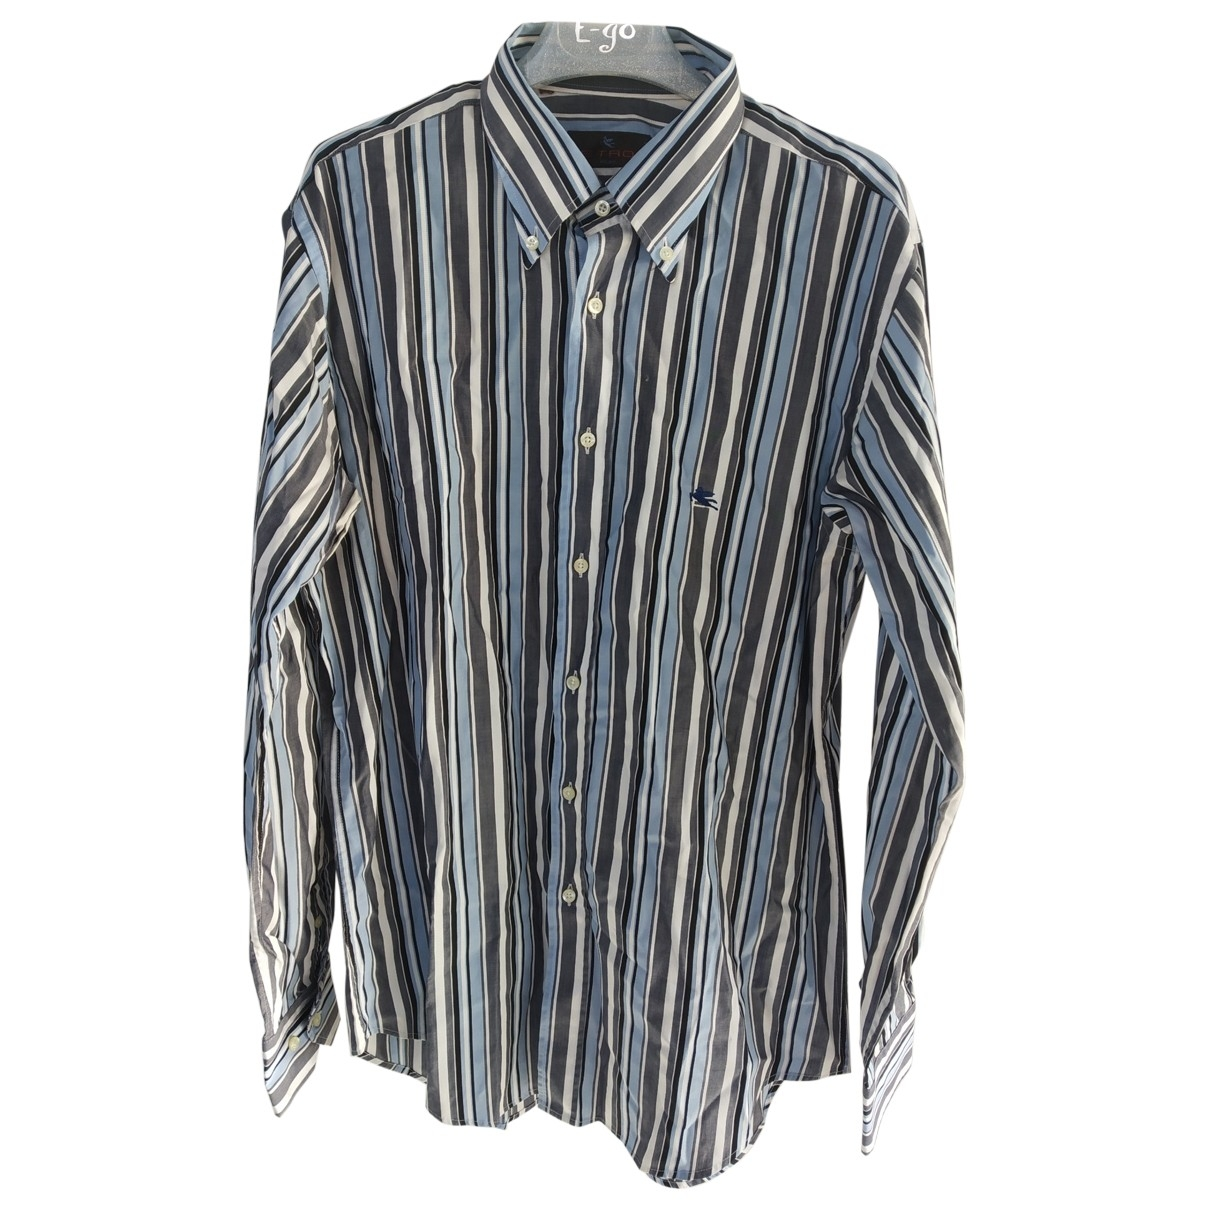 Etro \N Multicolour Cotton Shirts for Men 41 EU (tour de cou / collar)